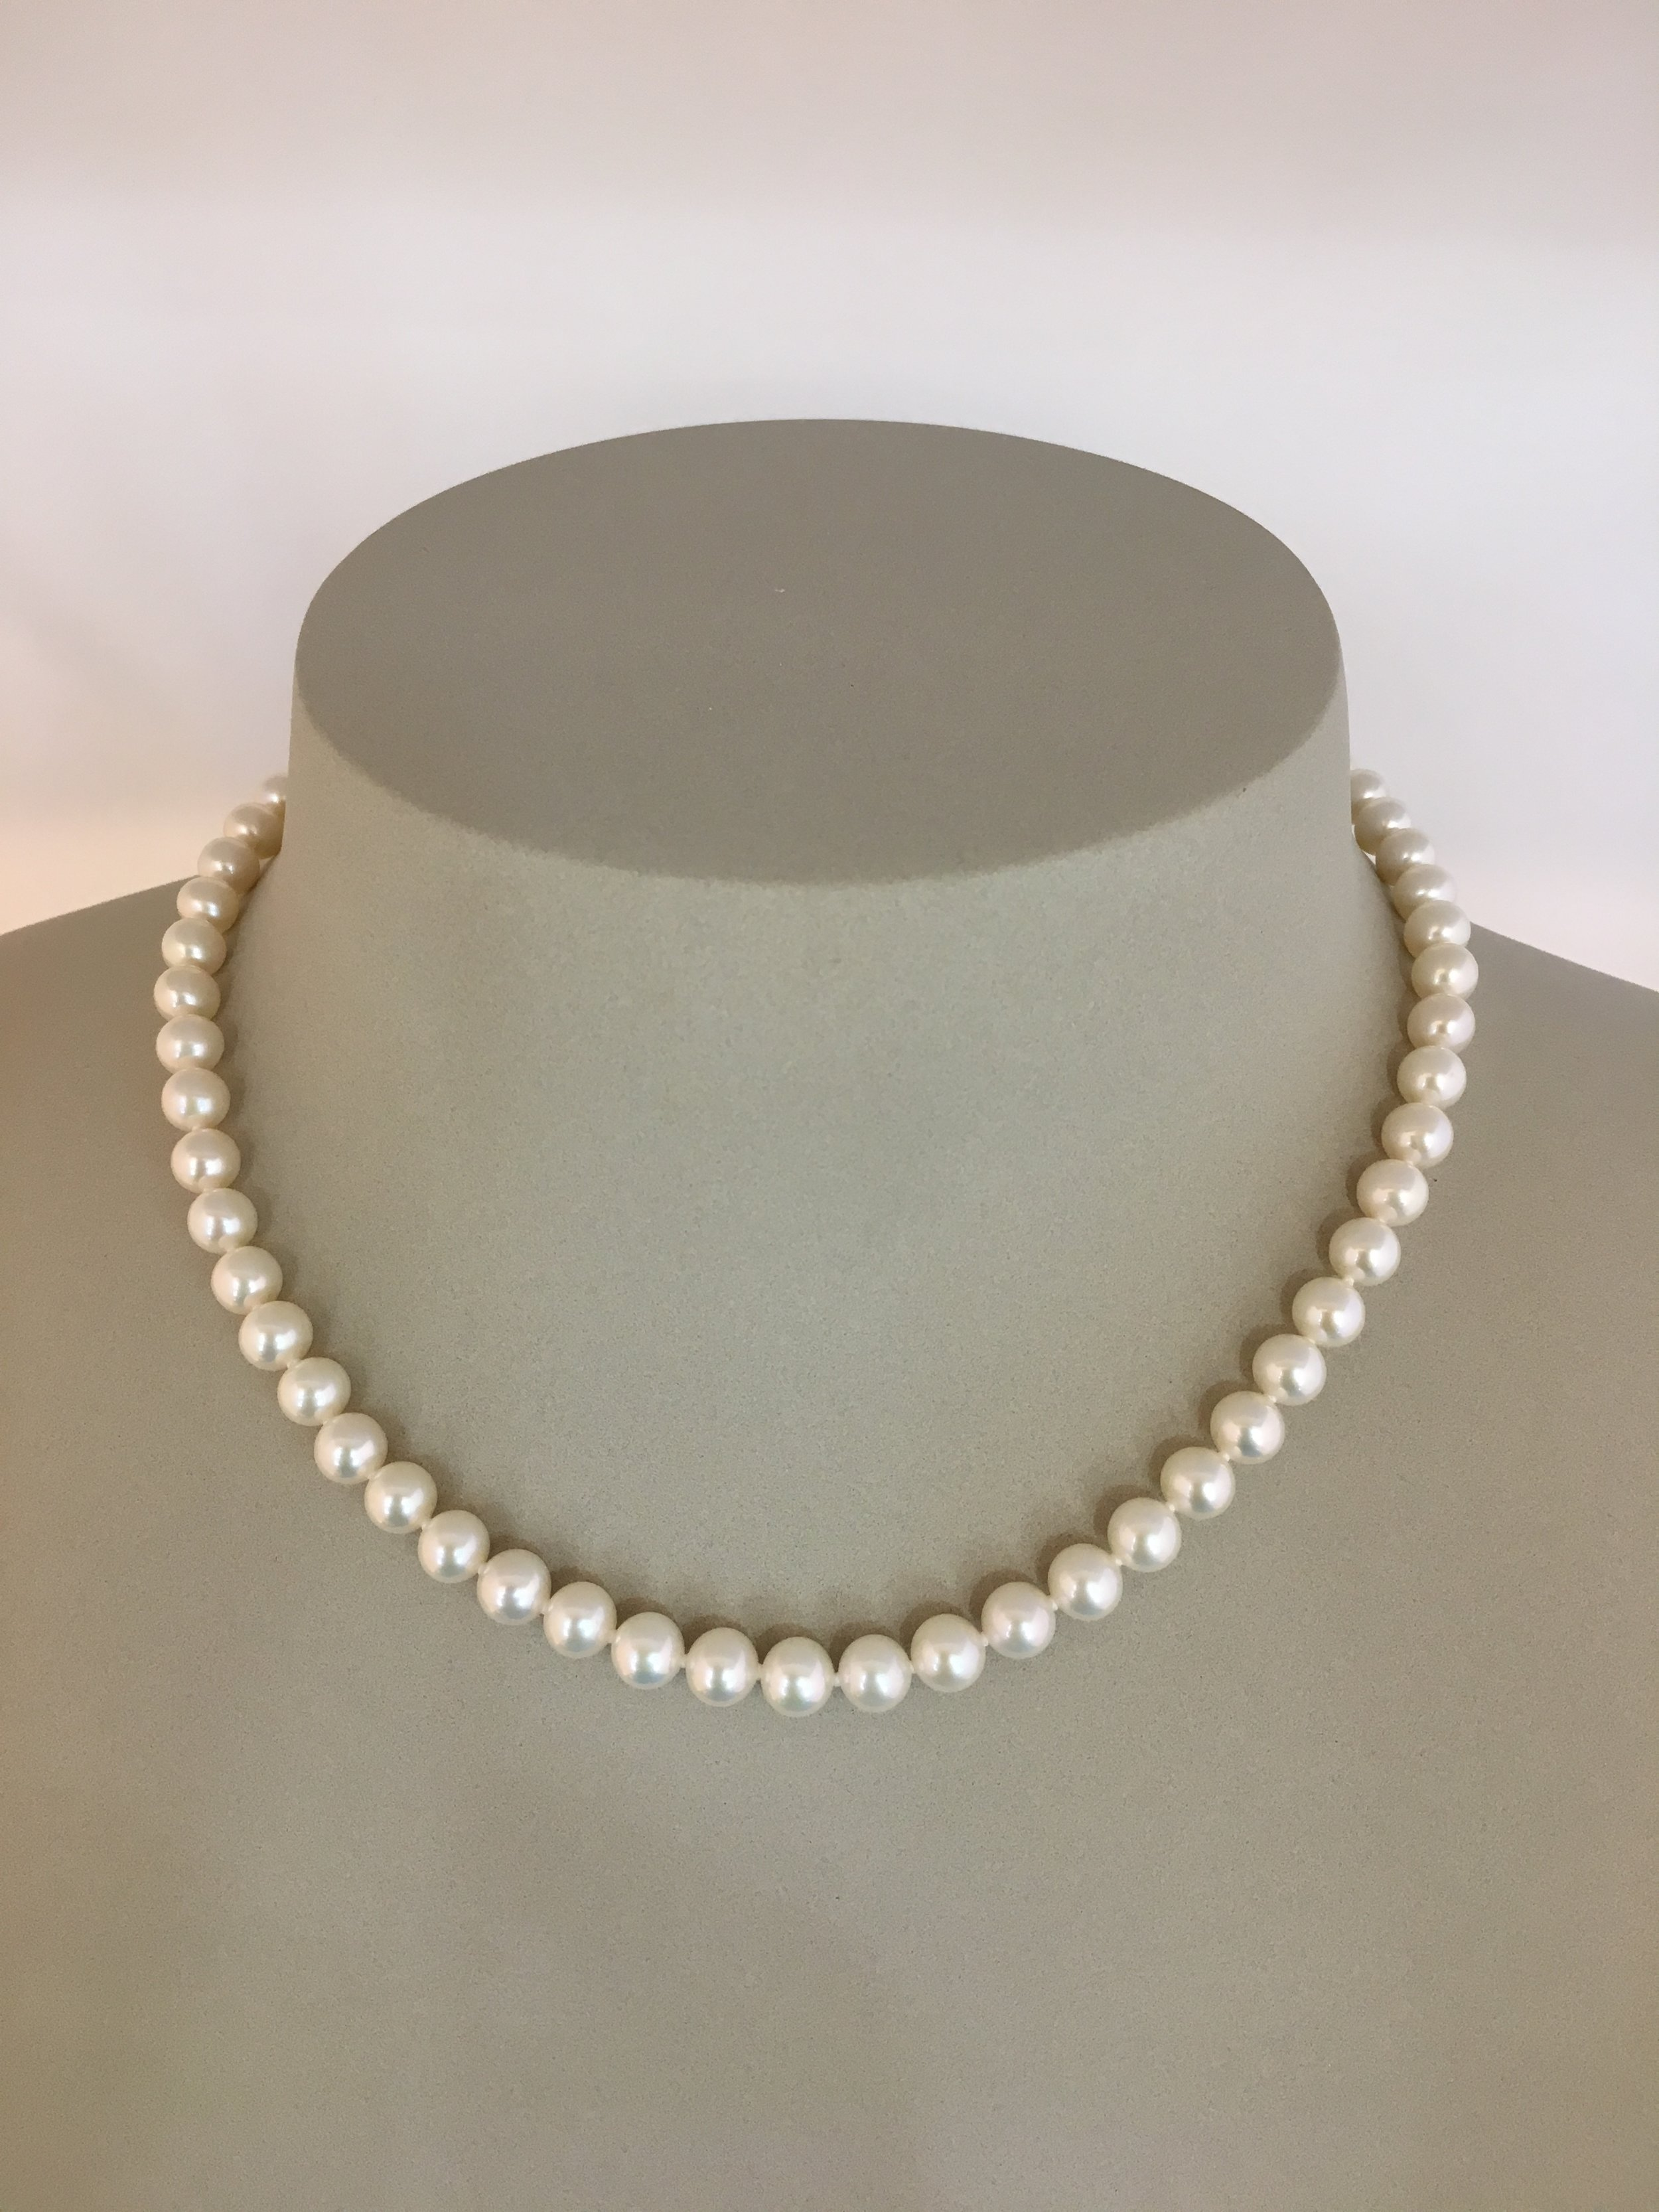 9ct White Golg Pearl Necklace